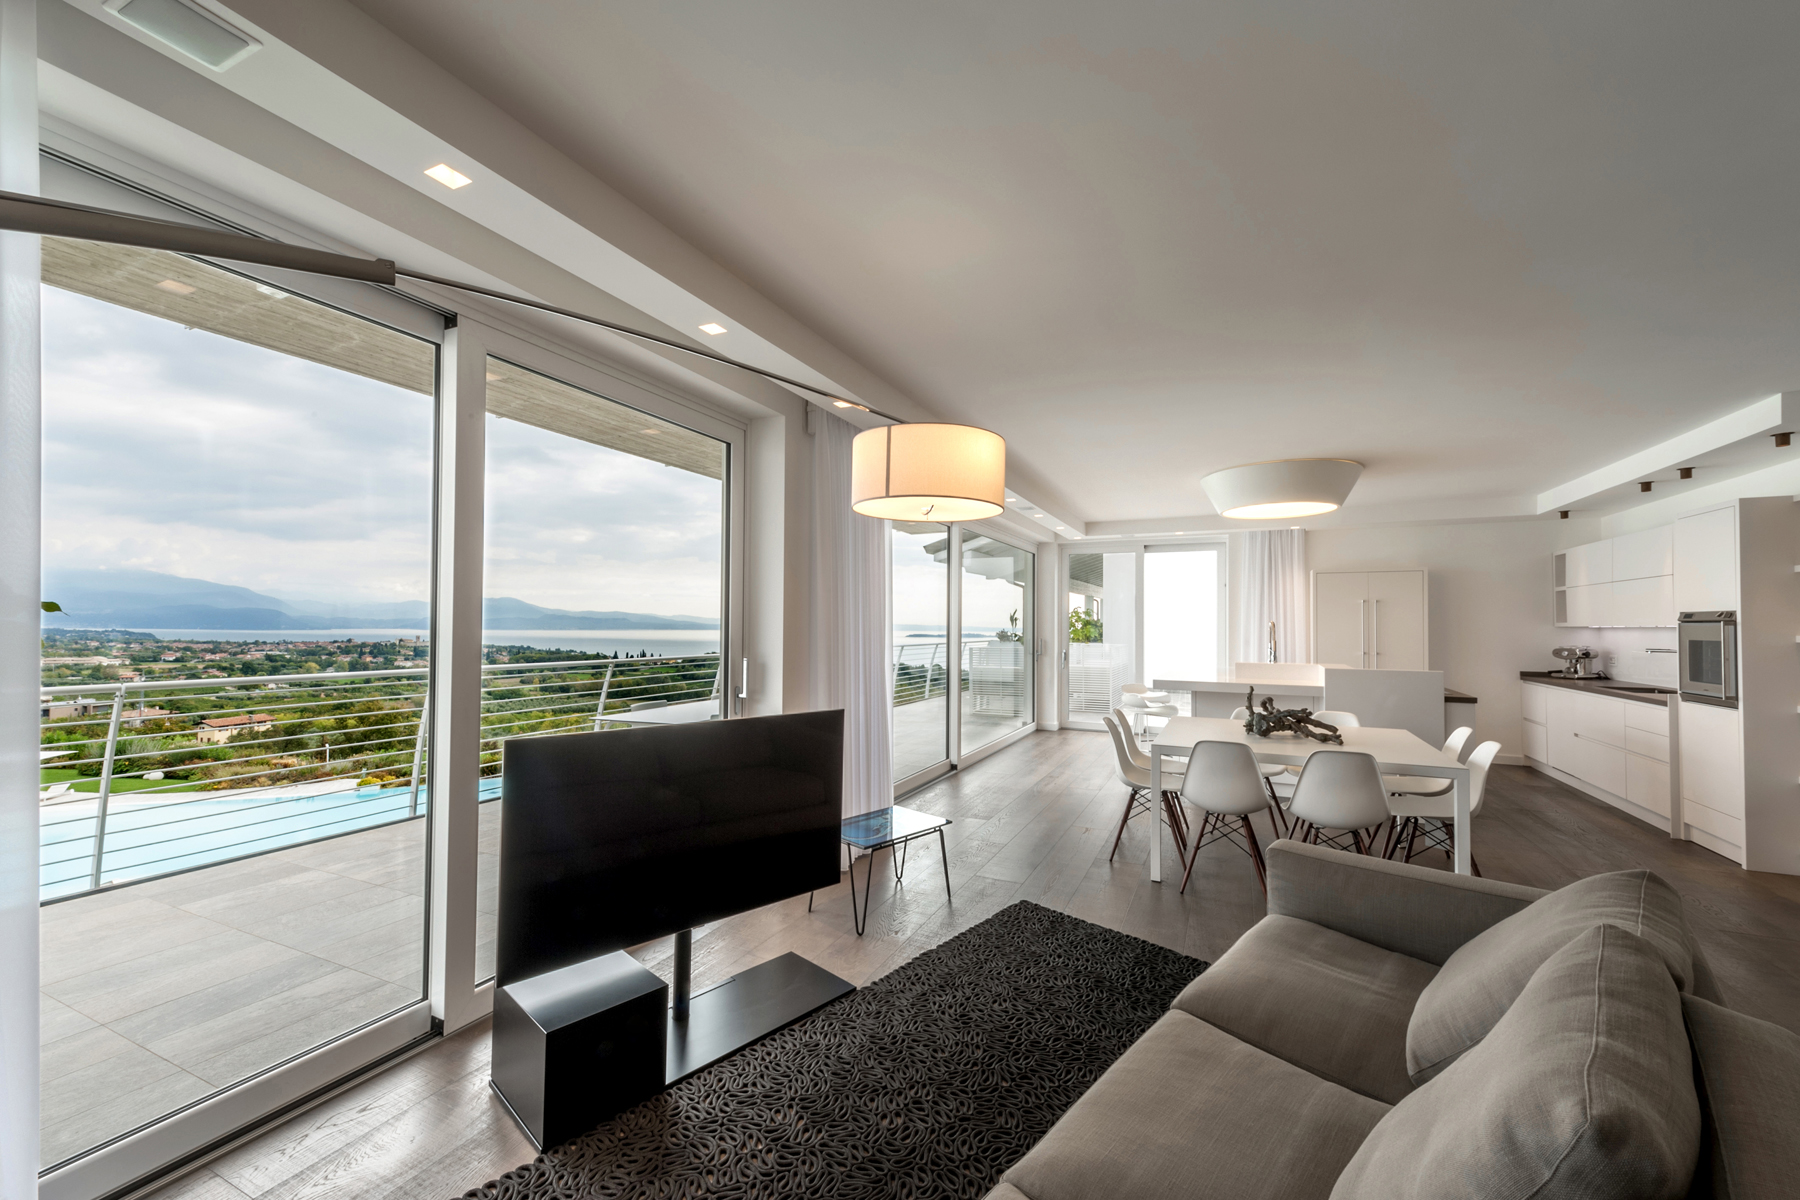 Apartments 为 销售 在 Prestigious penthouse with breathtaking view on Lake Garda Padenghe sul Garda, 布雷西亚 意大利